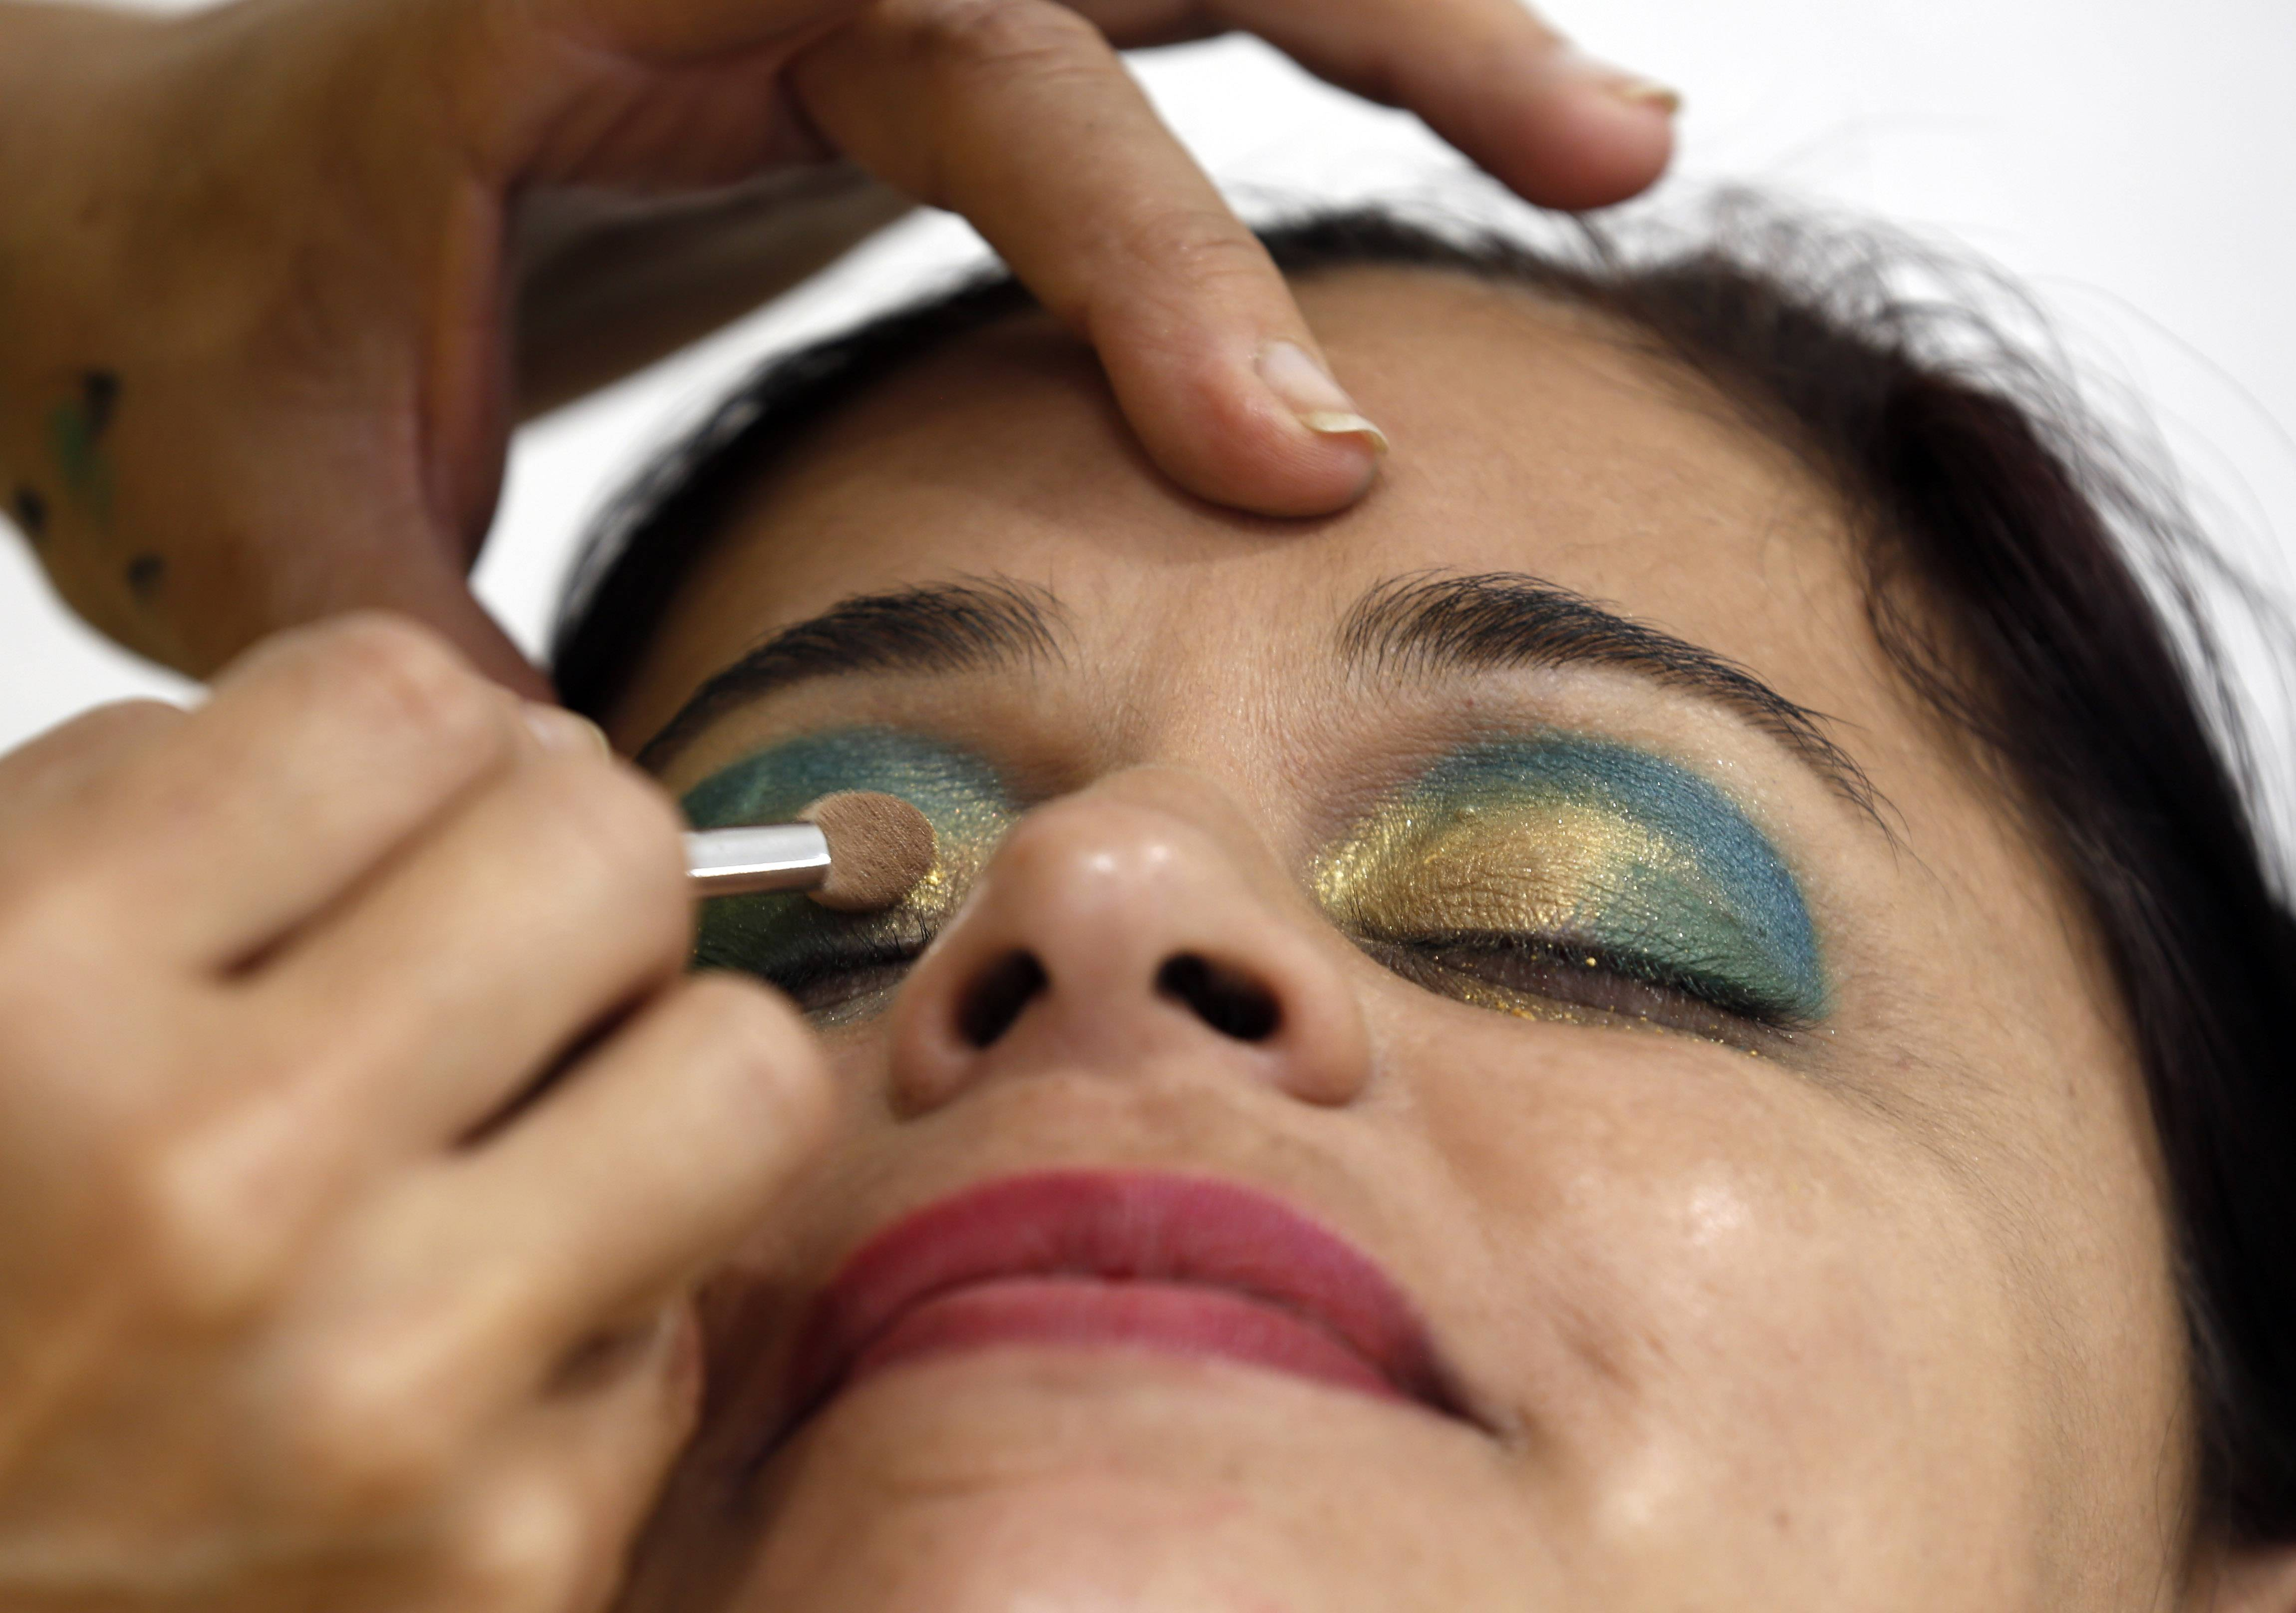 One football fan sports eye shadow in the colors of Brazil's flag ahead of the World Cup opening game, in Recife, Brazil.